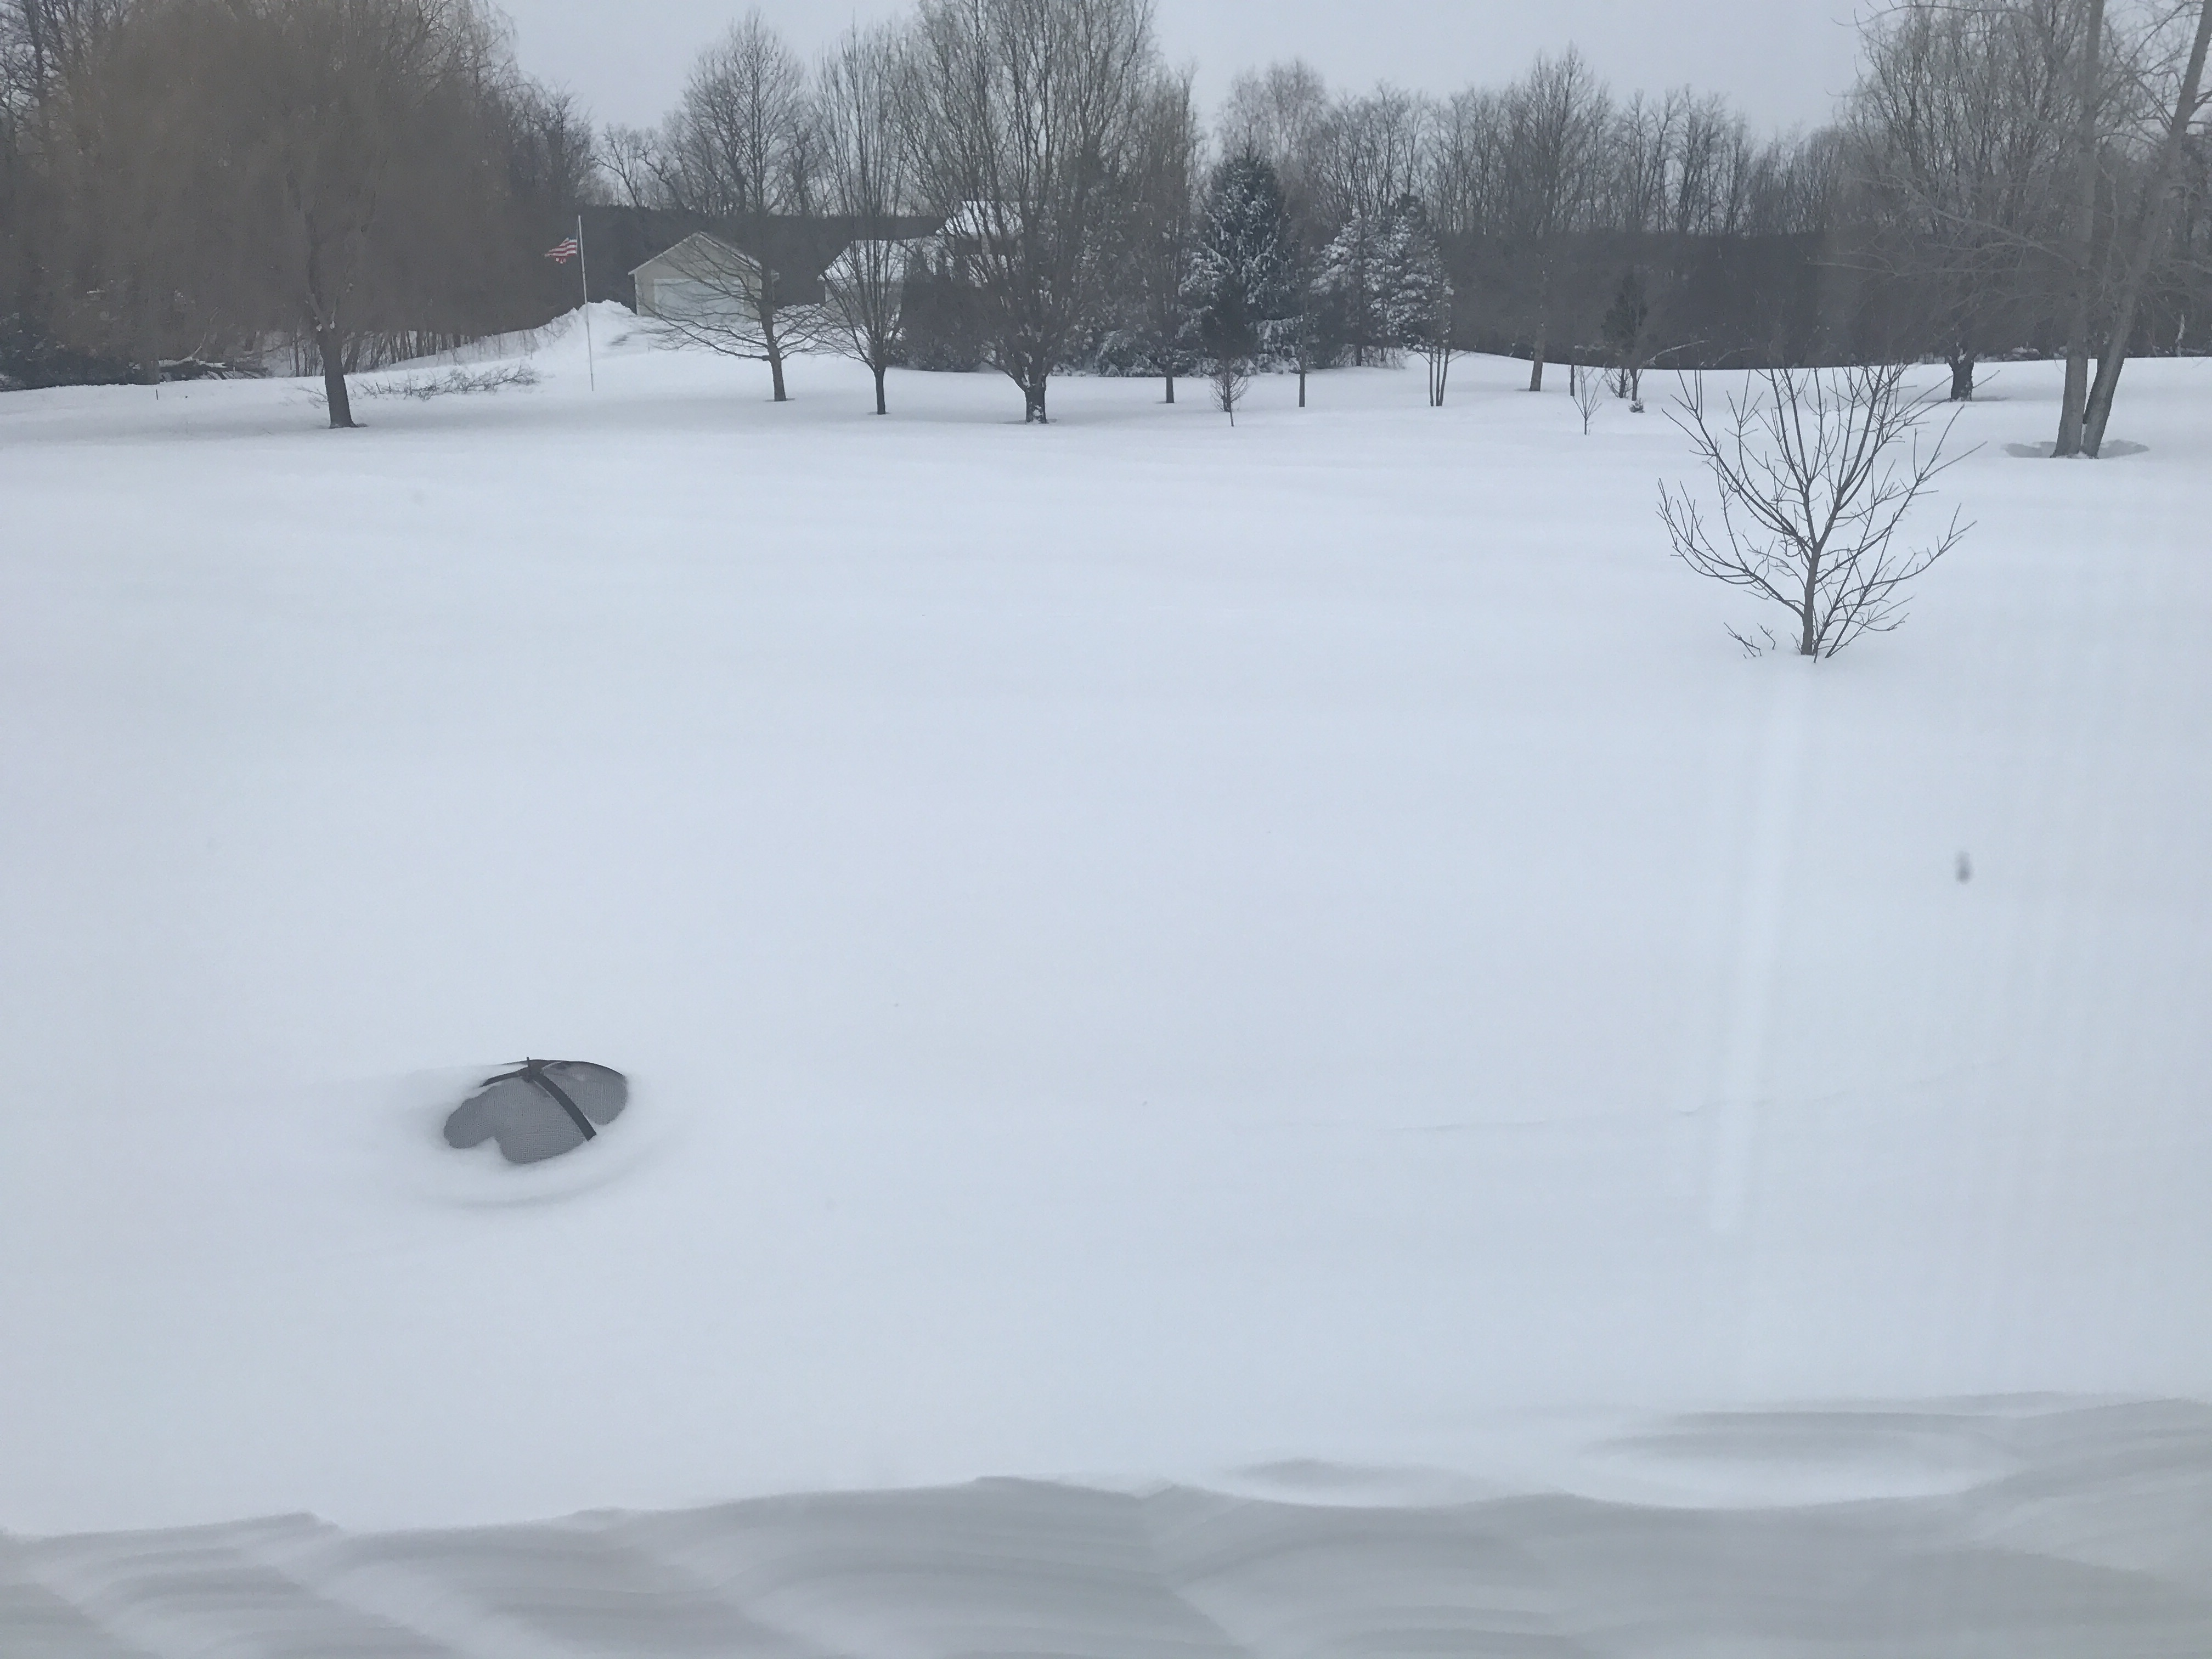 Blizzard of March 2017